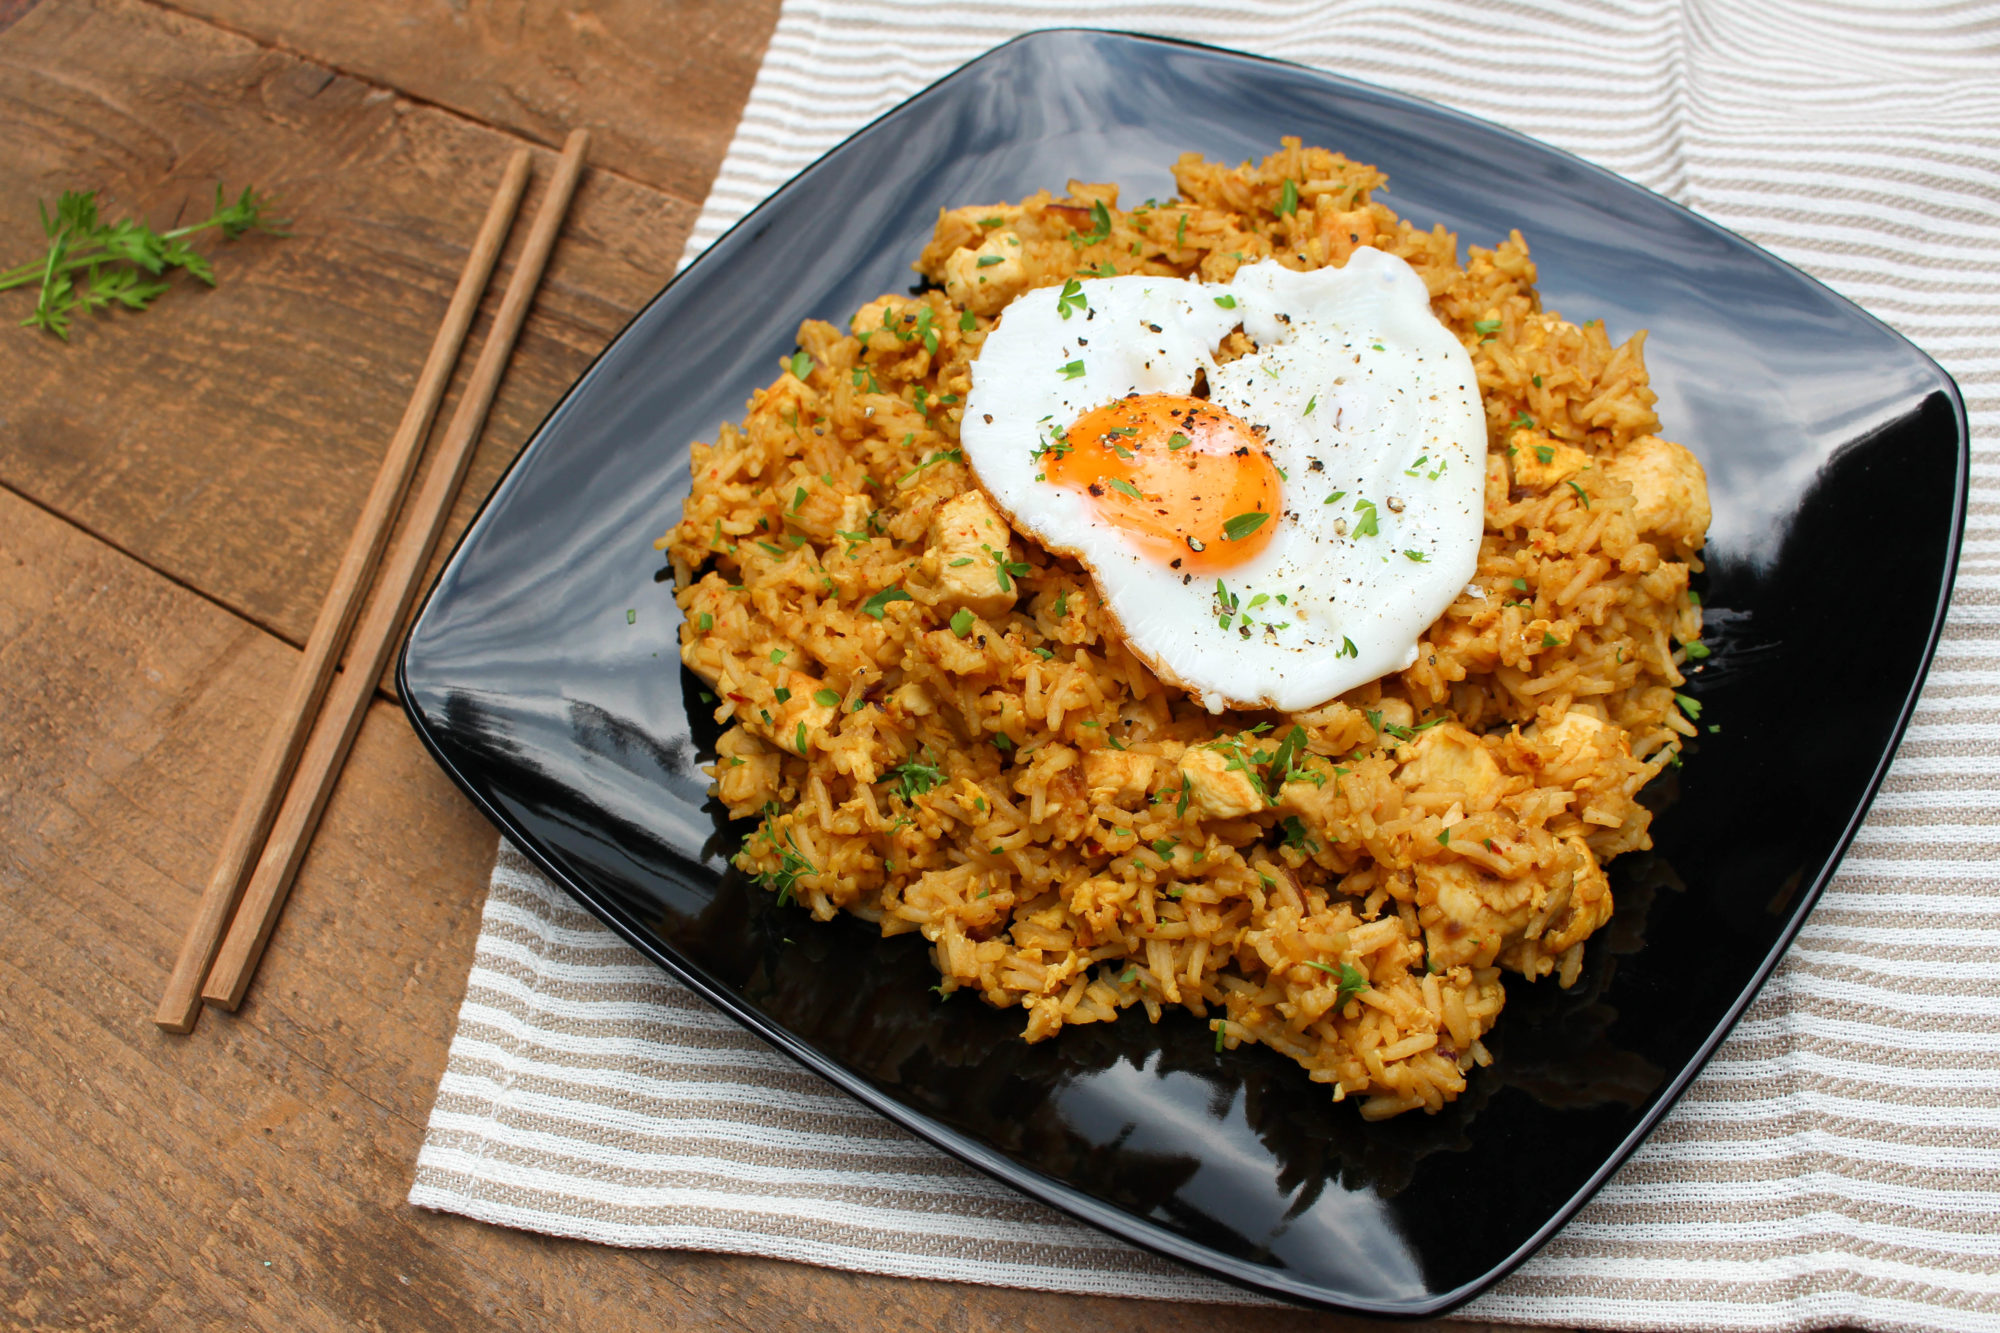 Nasi goreng indonesian fried rice authentic street food recipe nasi goreng recipe ccuart Gallery